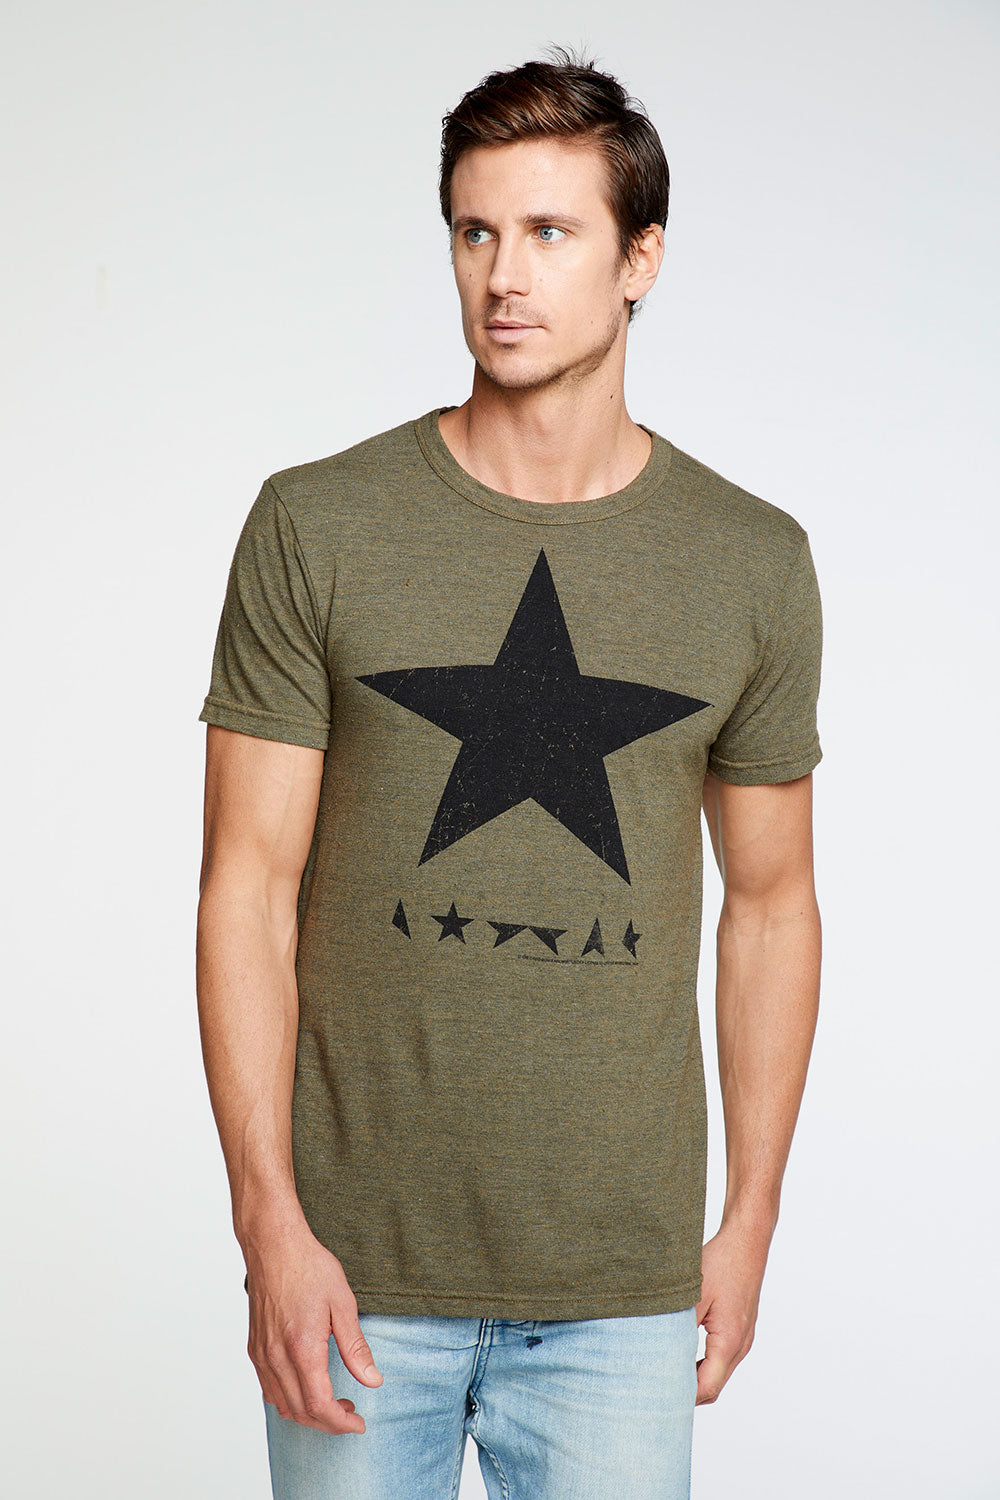 David Bowie - Black Star Crew Neck Tee MENS chaserbrand4.myshopify.com